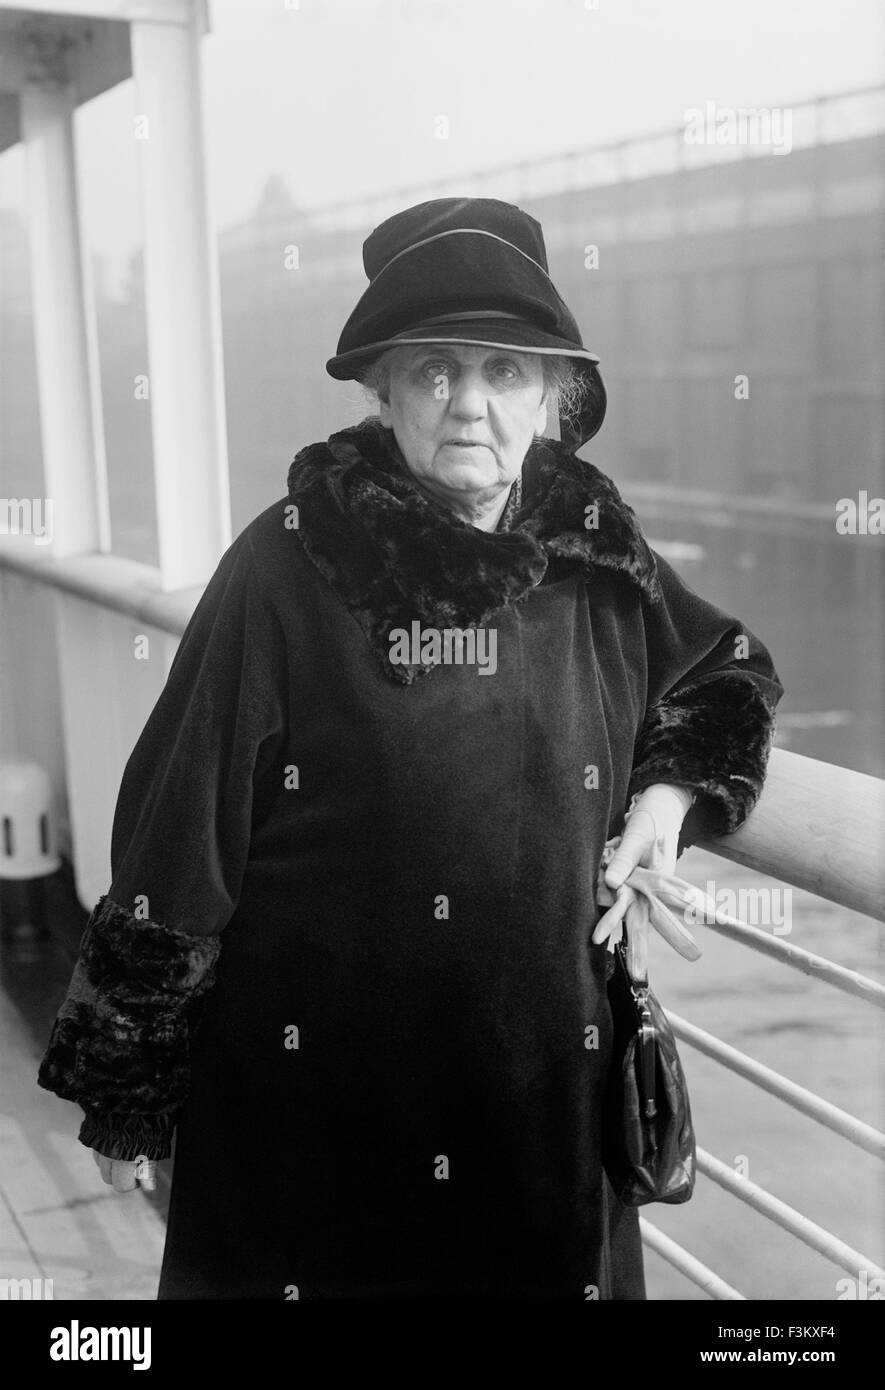 JANE ADDAMS (1860-1935) American reformer about 1925. Photo Bain News Service - Stock Image